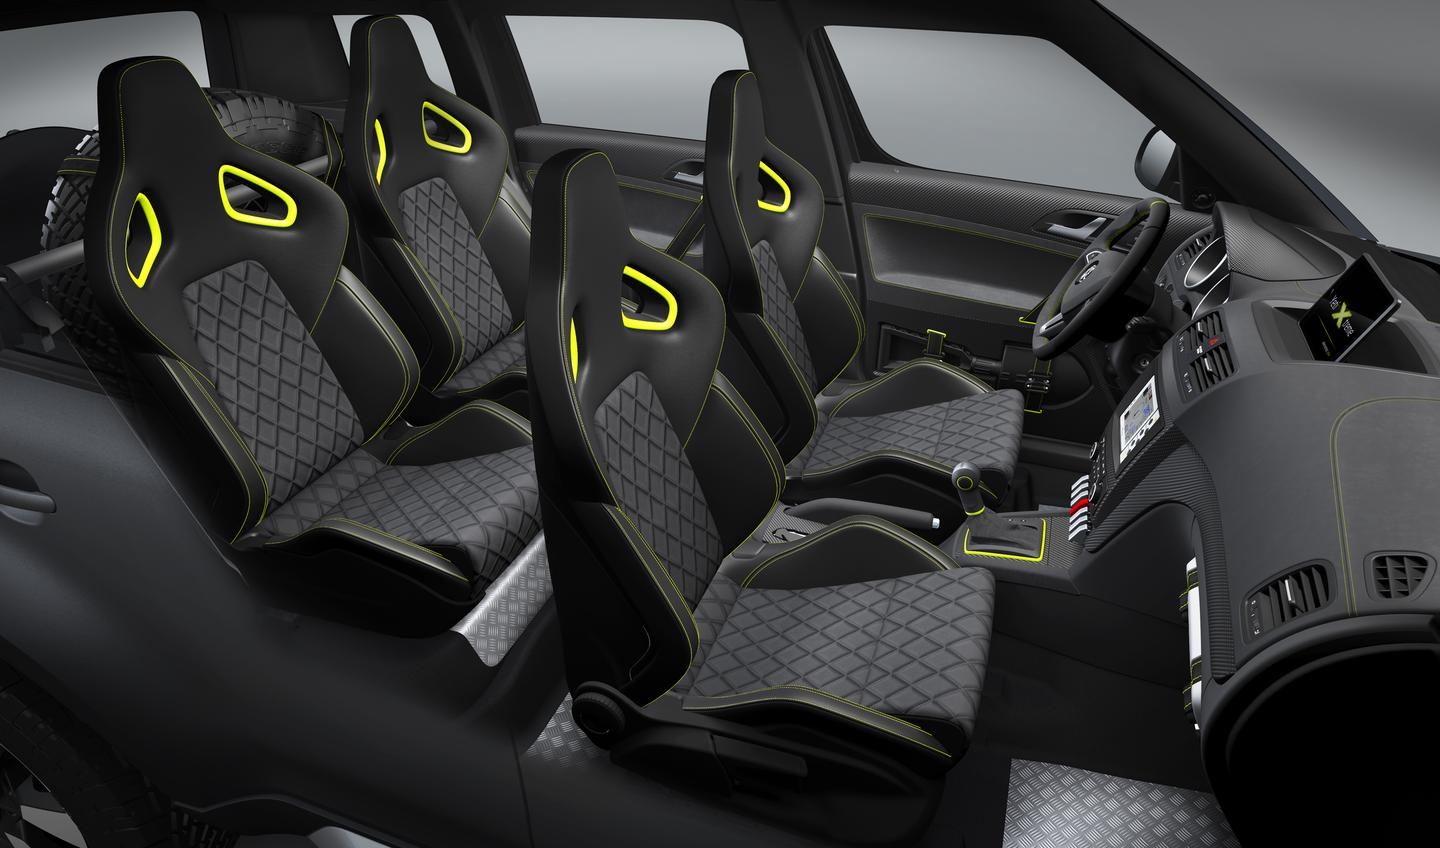 Four Recaro sports seats support the Yeti Extreme driver and passengers